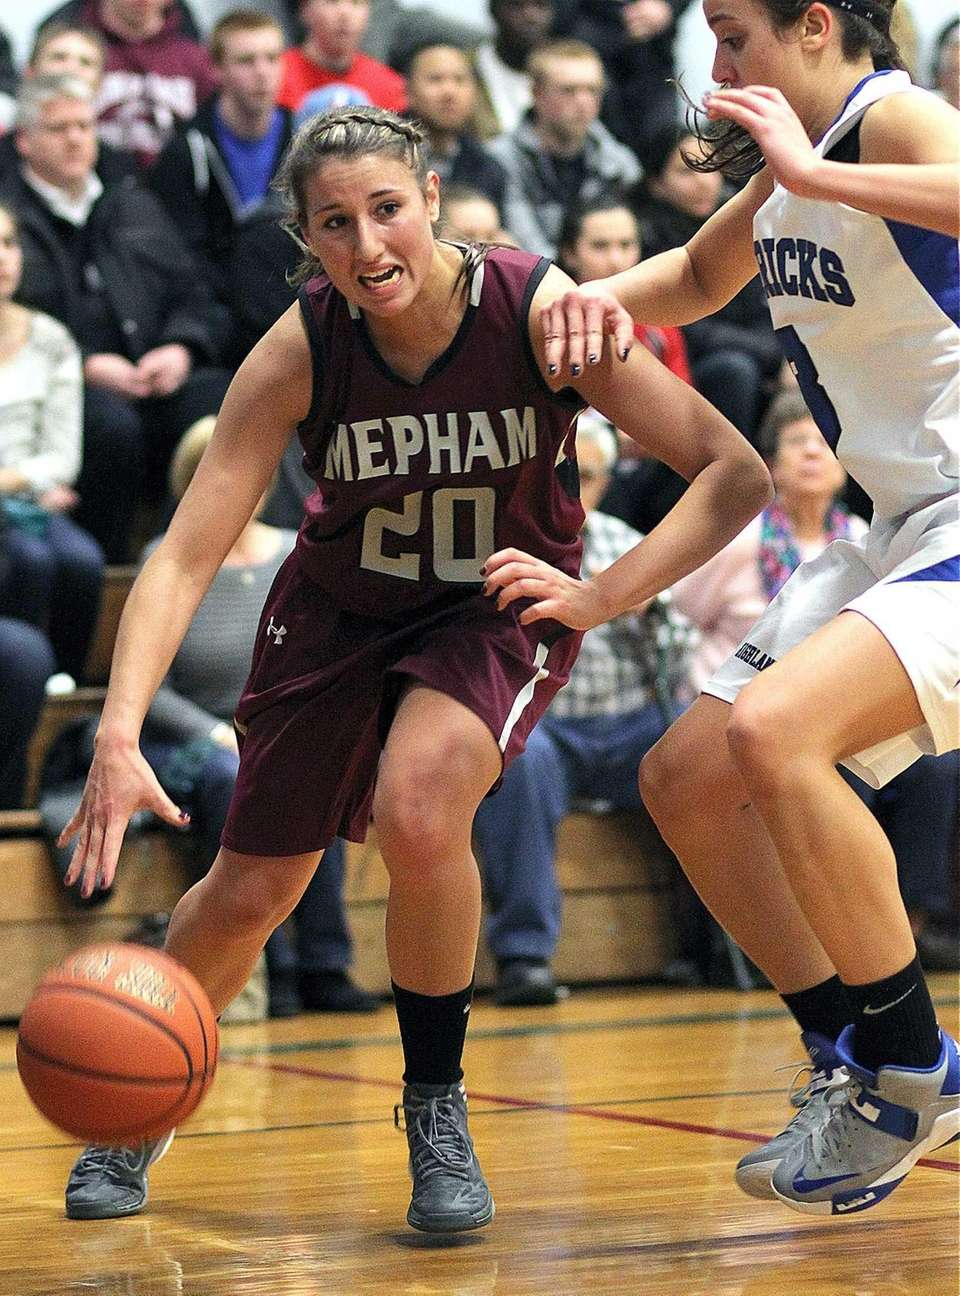 Mepham's Nicole Castaldo charges under the boards during